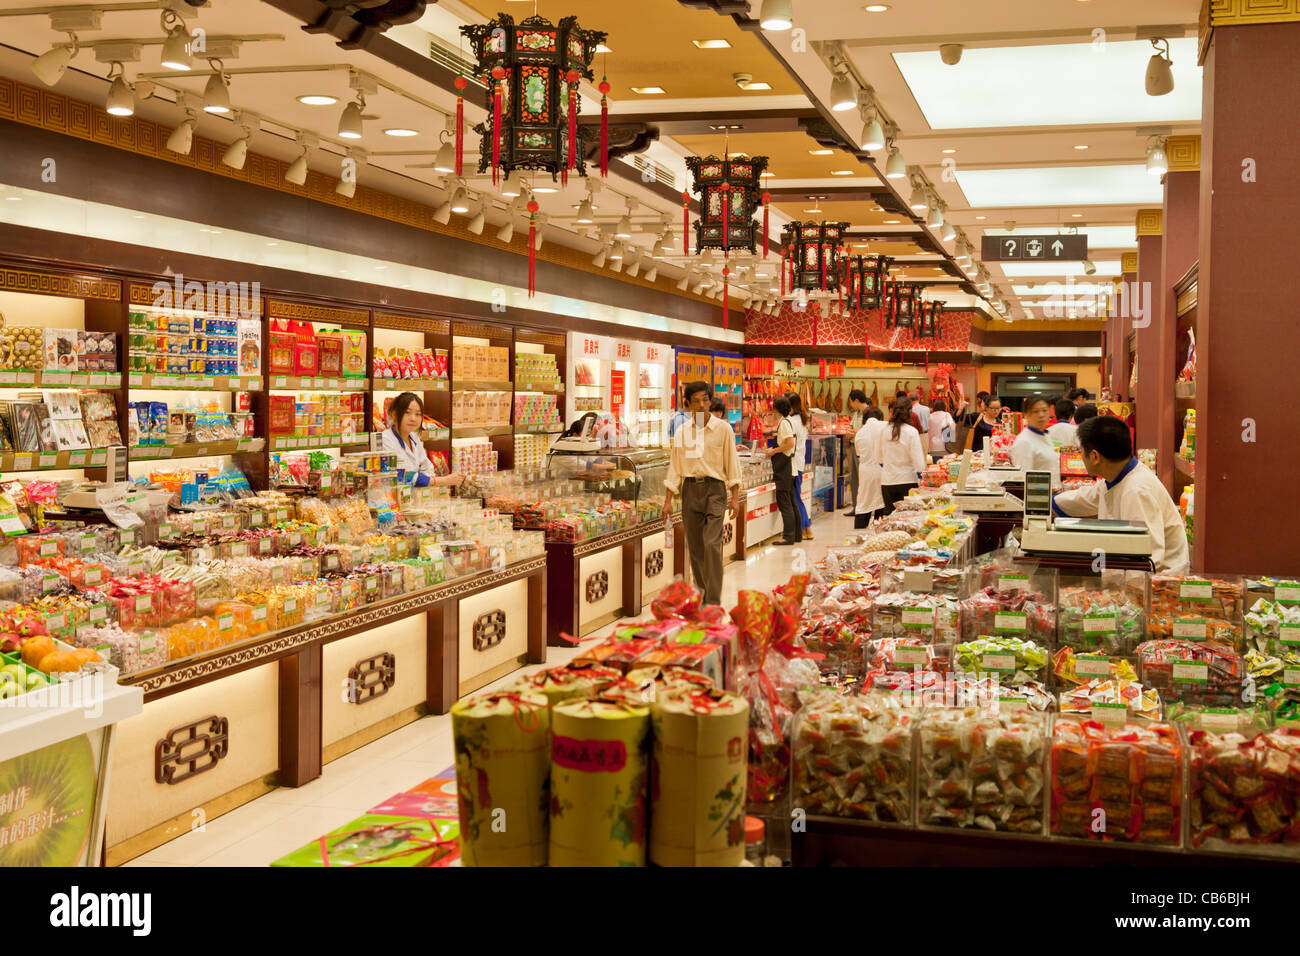 inside-a-chinese-indoor-market-food-item